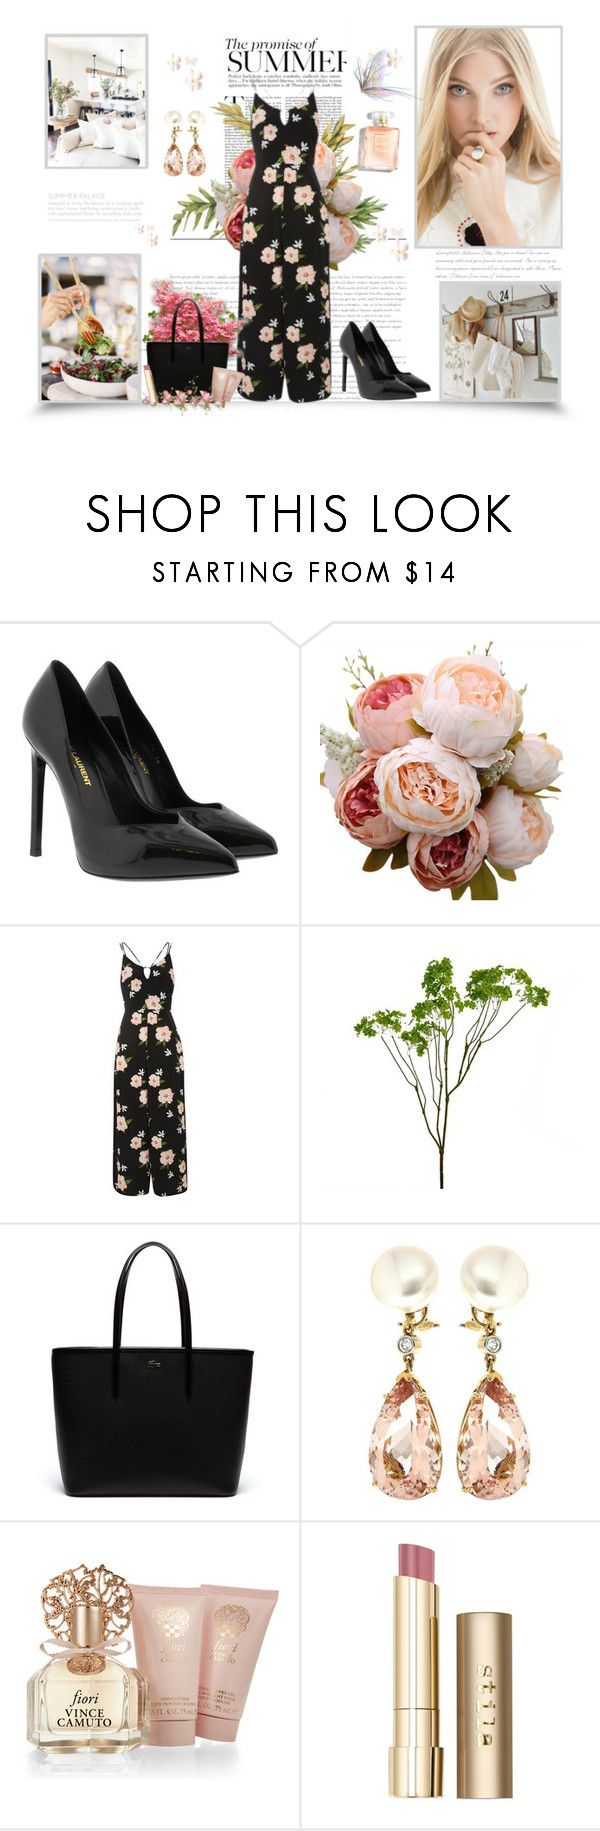 """The promise of summer"" by krystalkm-7 ❤ liked on Polyvore featuring Yves Saint Laurent, Topshop, Abigail Ahern, Lacoste, Valentin Magro, Vince Camuto and Stila"